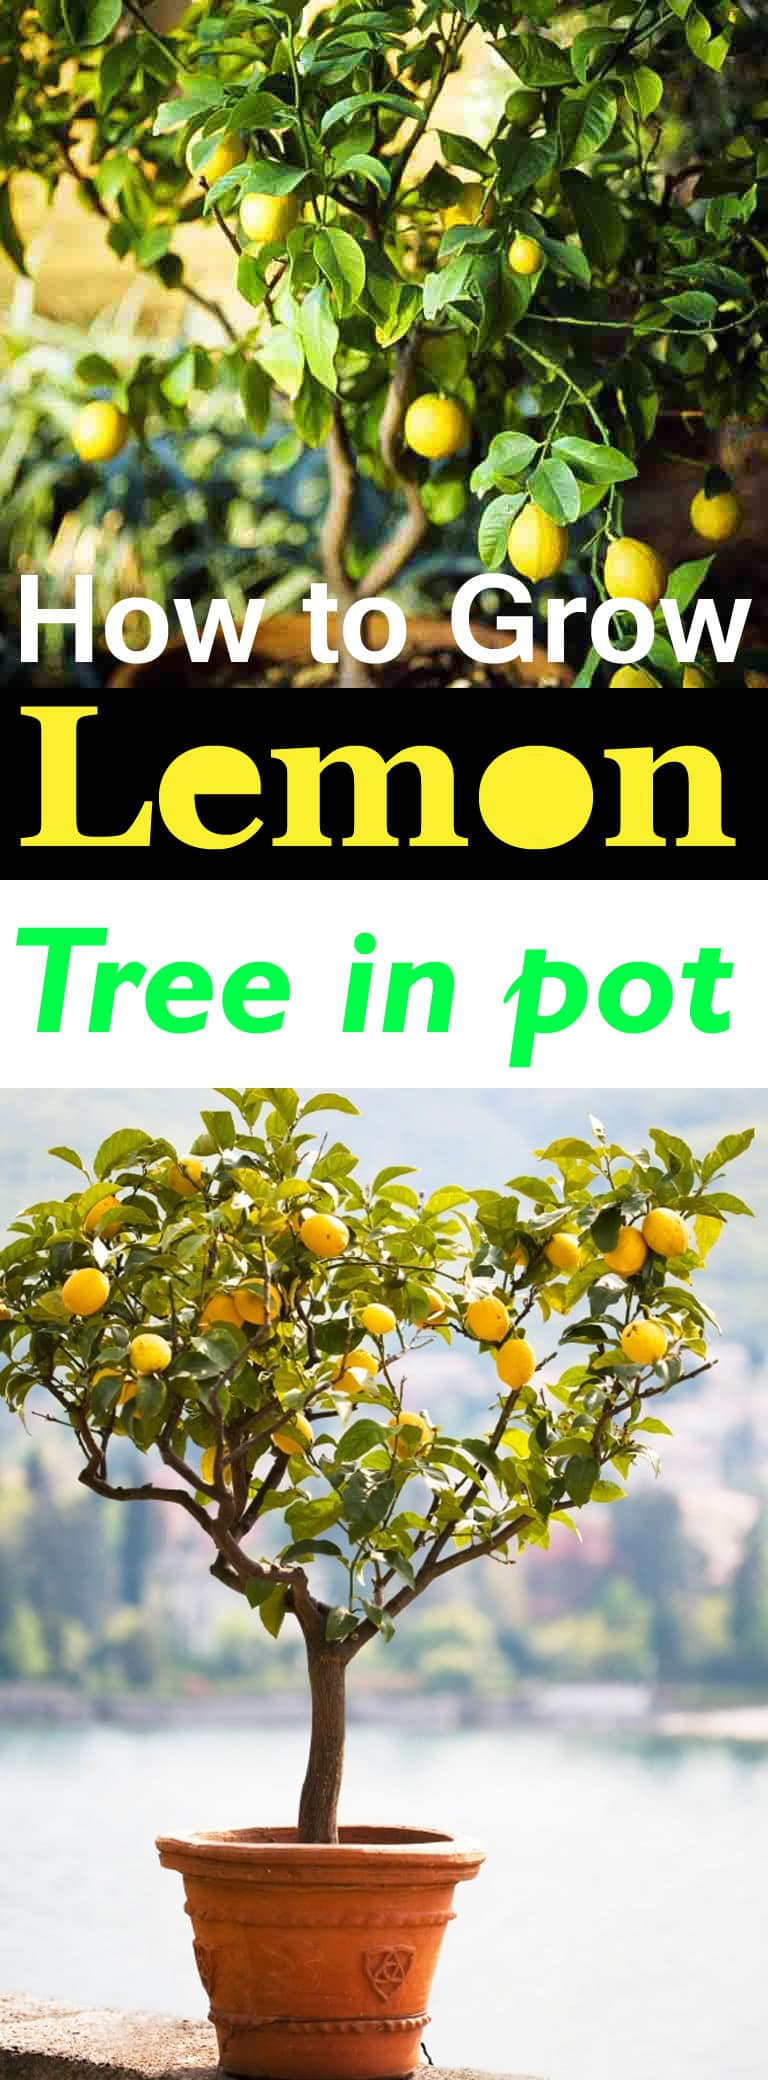 How To Grow And Divide Peonies: How To Grow A Lemon Tree In Pot